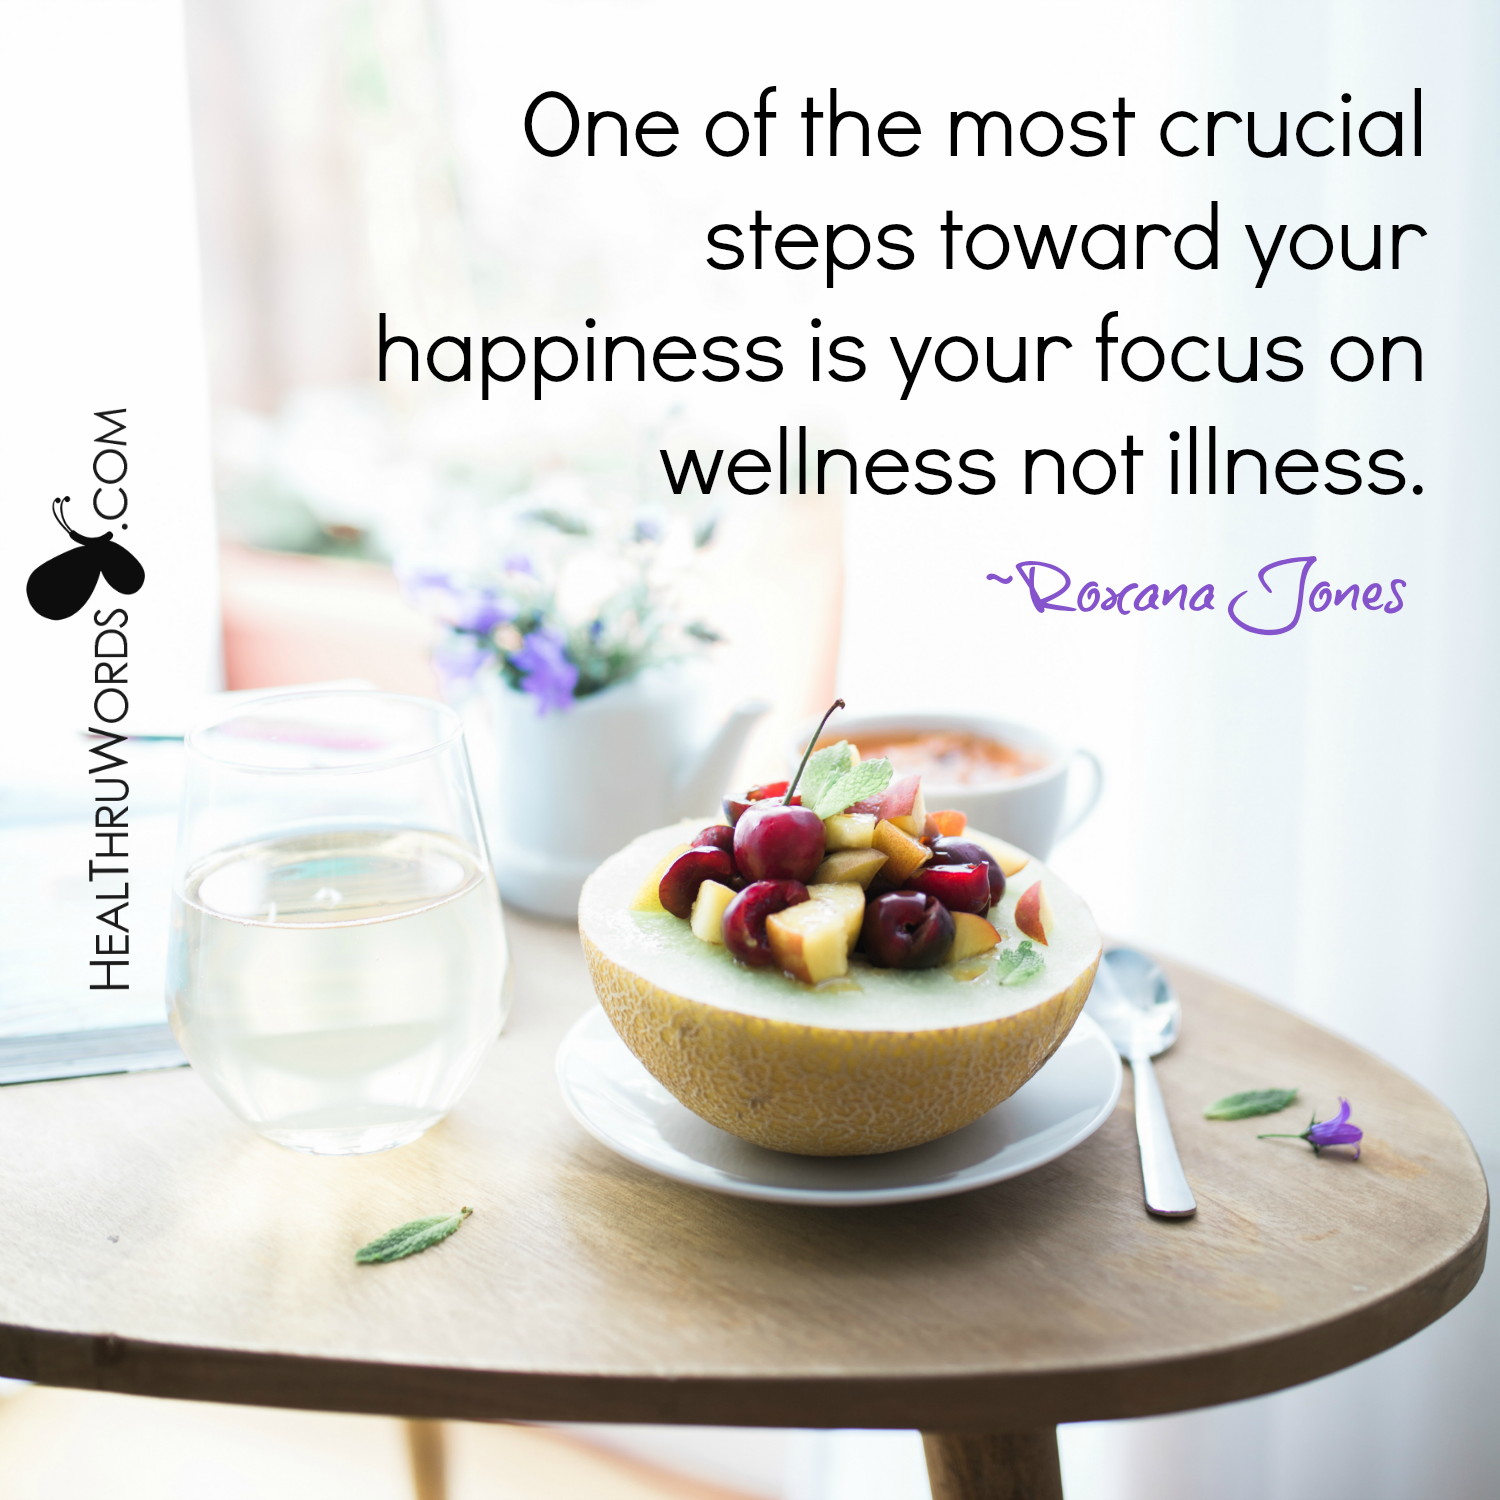 Inspirational Image: Wellness Comes First